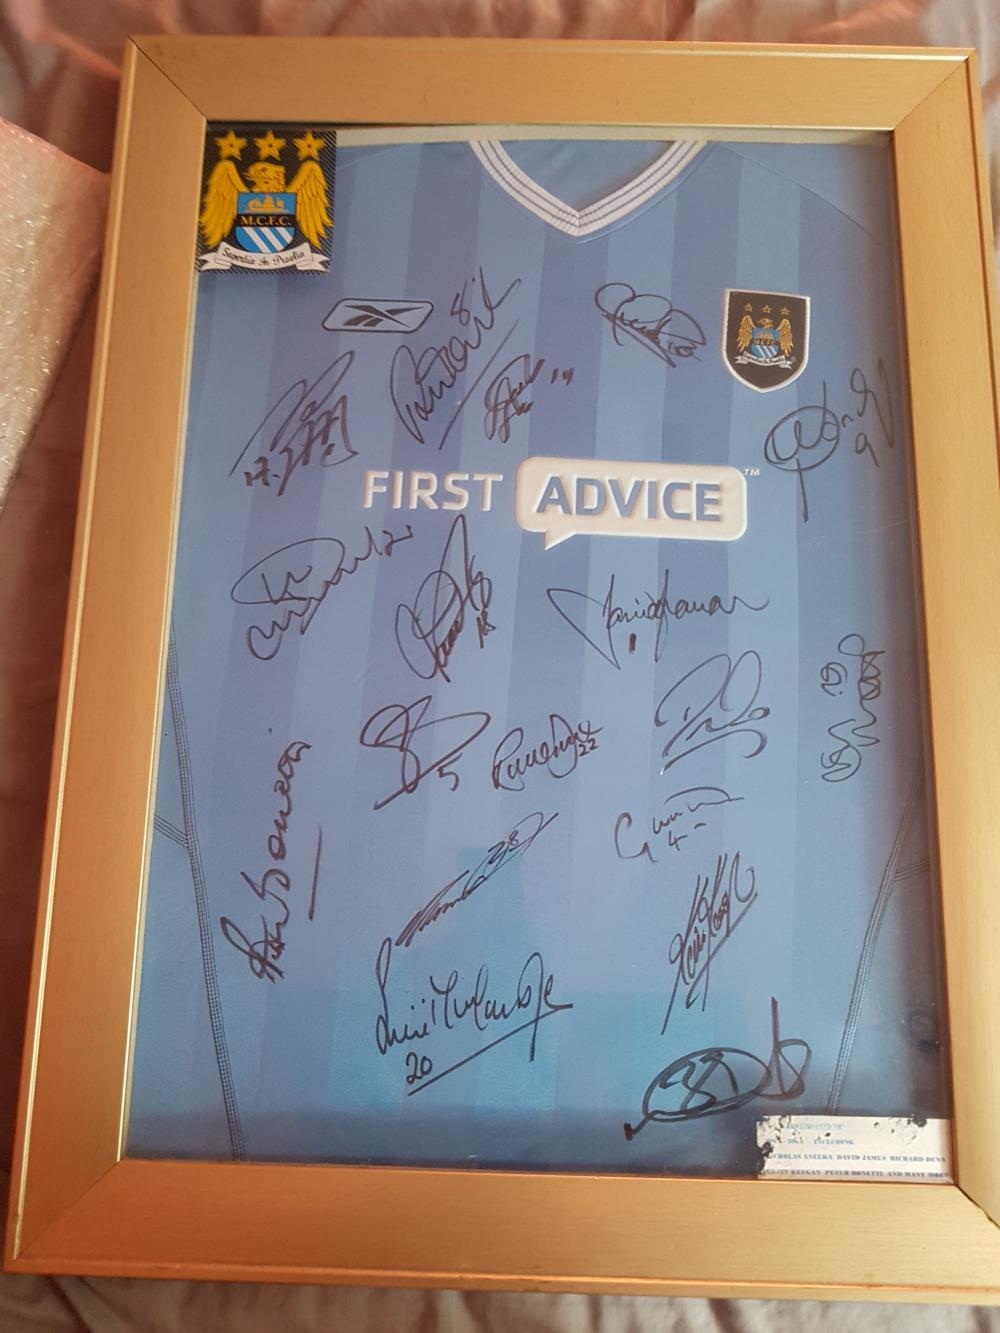 Lot 76 - Signed and Framed Manchester City Football Shirt (Sponsor First Advice), which is signed by the Team.